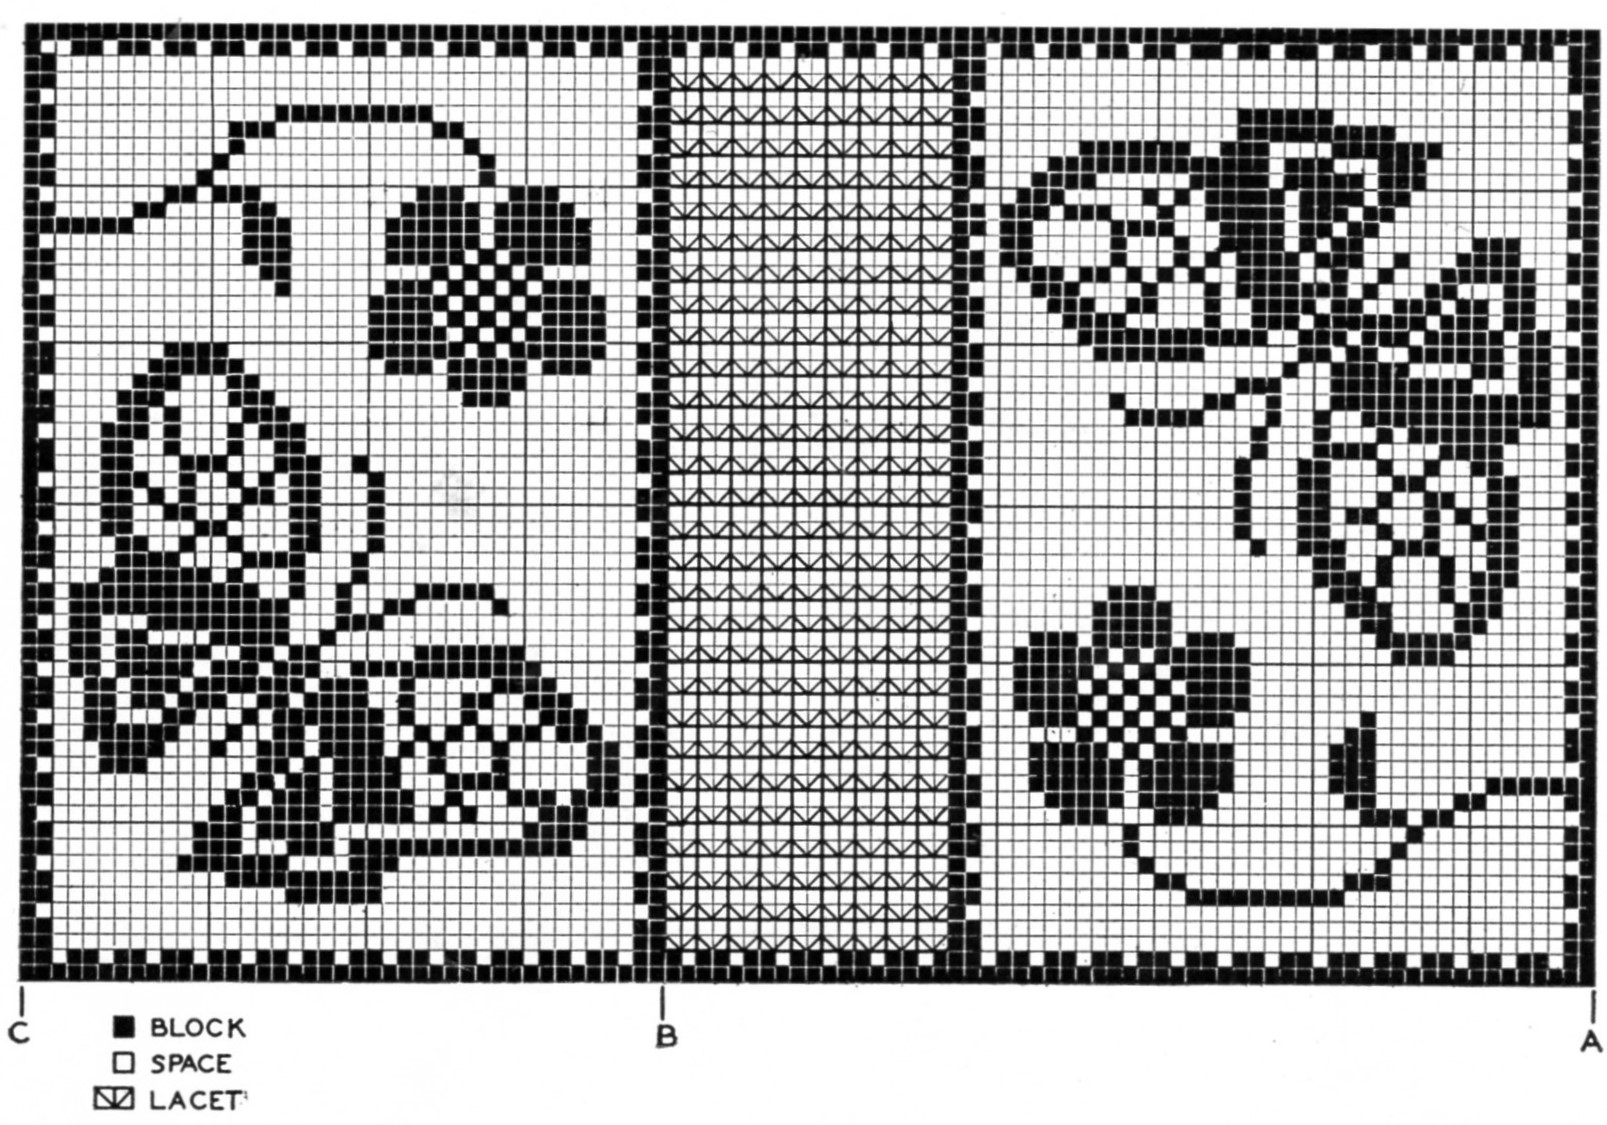 Knitting Chart Maker Free Download : Filet crochet pattern maker download dancox for